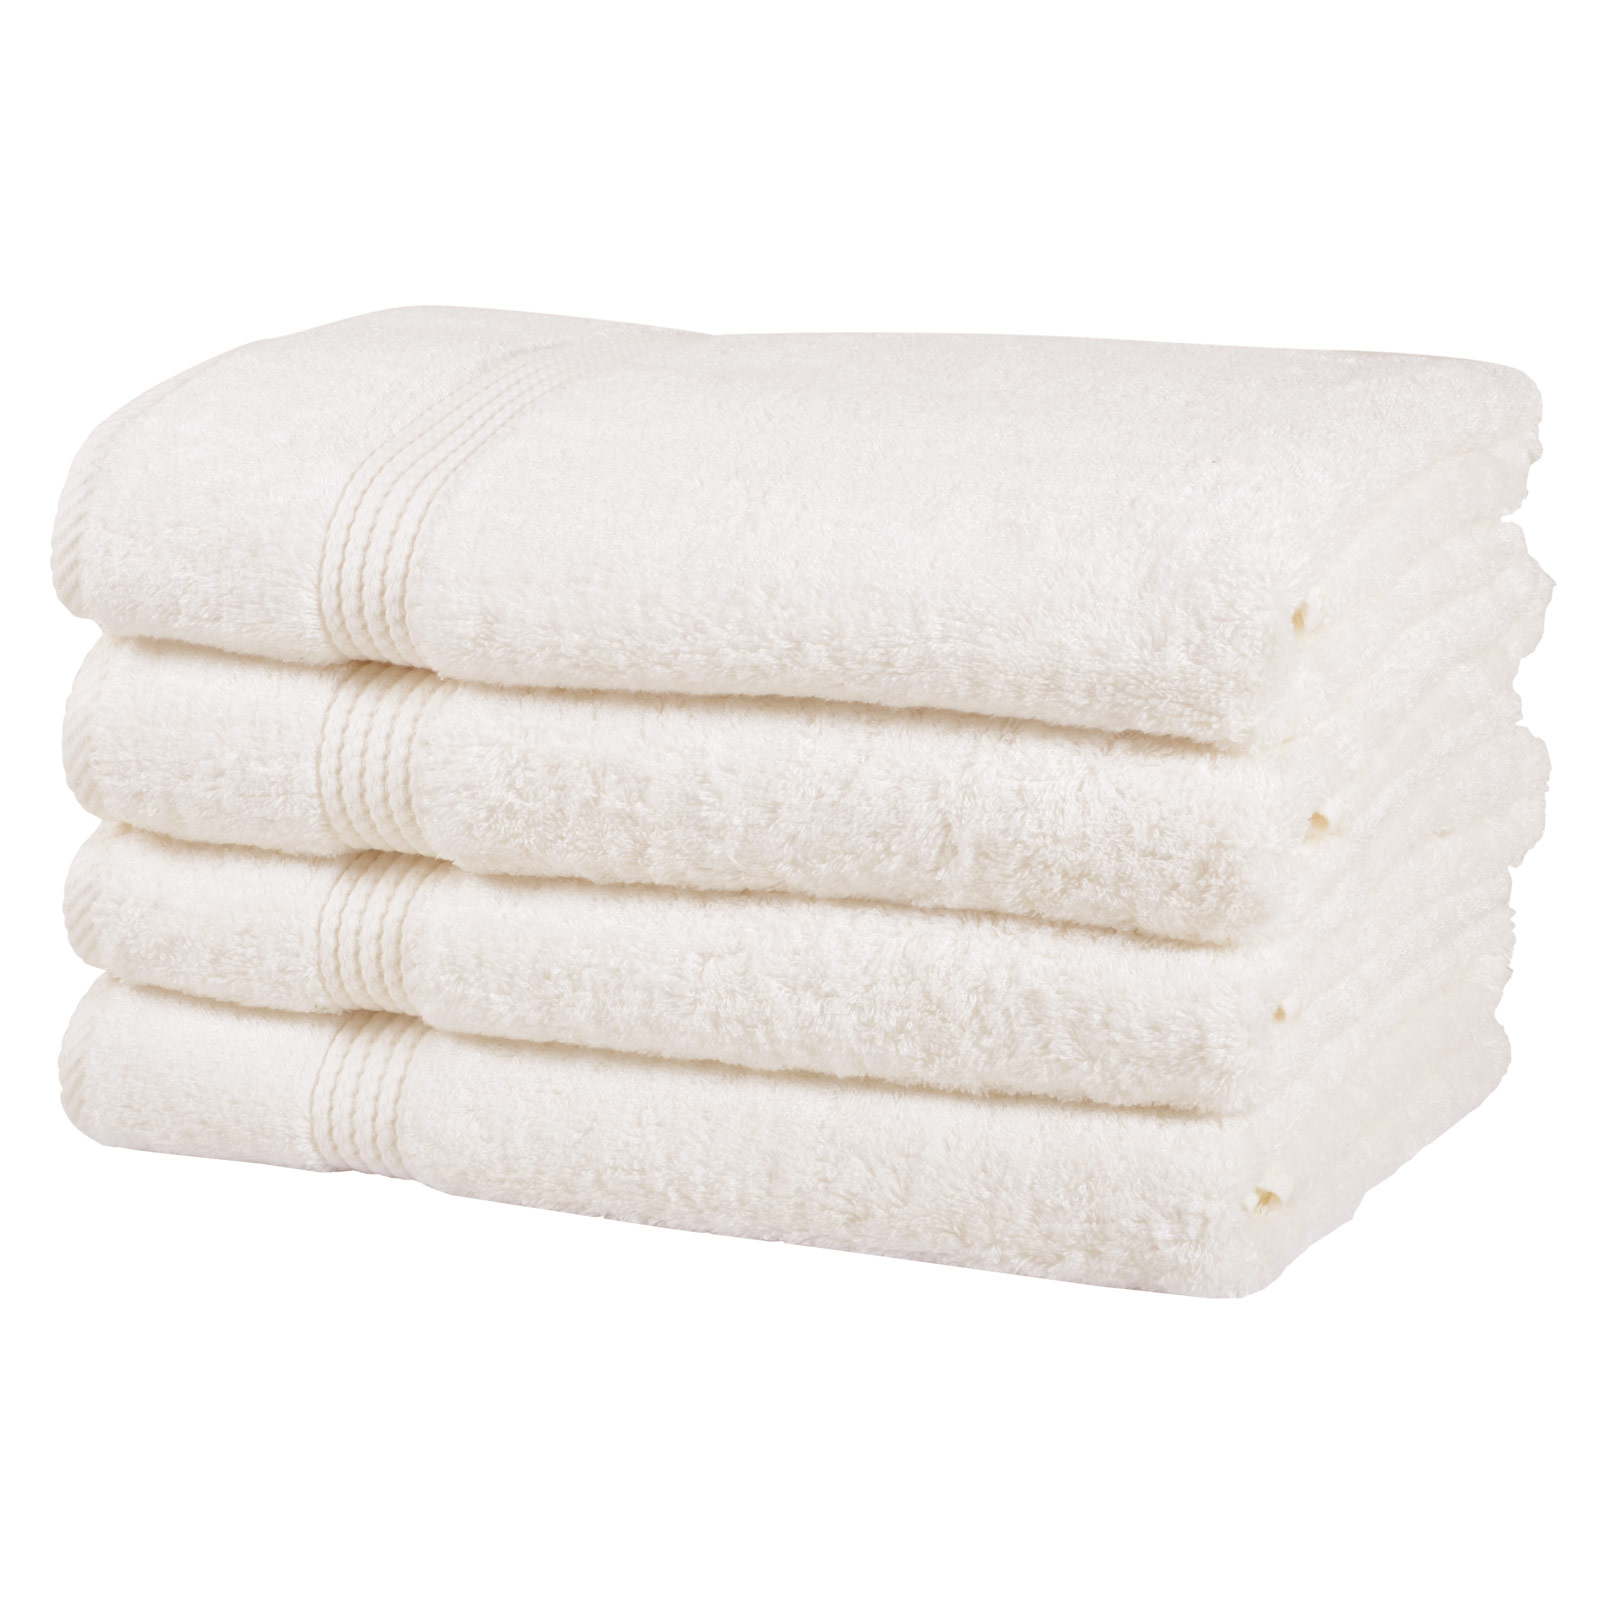 Towels amp Bath Sheets  Bathroom Hand amp Guest Towels  MampS